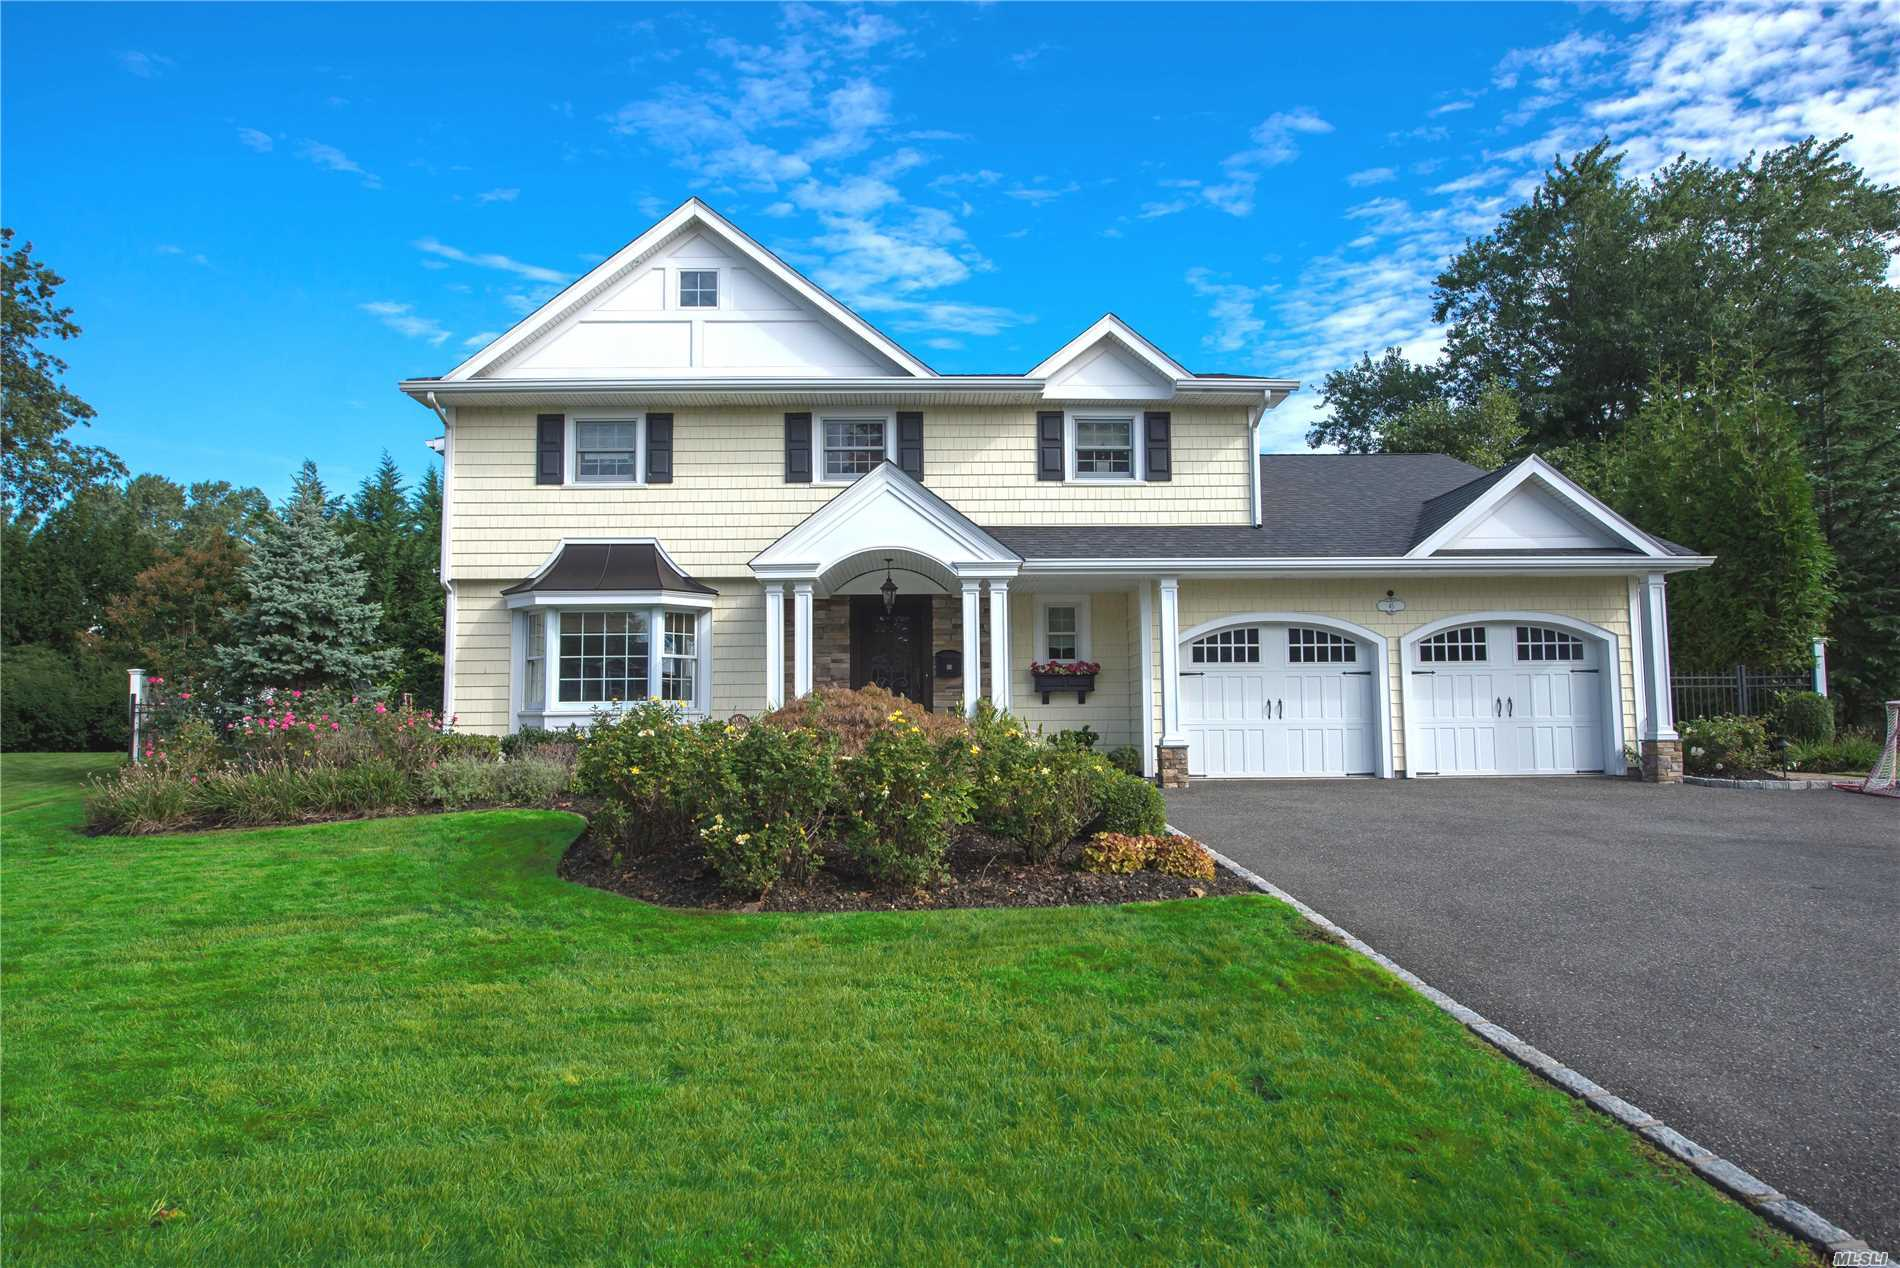 Very Rare Splanch Style Home Completely Renovated With Gorgeous Curb Appeal Has It All. Custom Chefs Kitchen, Open Layout With Large Entertaining Rooms. Set On An Oversized Lot On A Very Desirable Private Street In The Heart Of East Birchwood.The Country Club Yard Has An In-Ground Gunite Heated Pool, Covered Patio, Built in BBq And Entertaining Island. See Attached Highlight Sheet For All Updates. **New Tax Impact Notice States Taxes At $24, 196. for 2020 See Attached Letter**